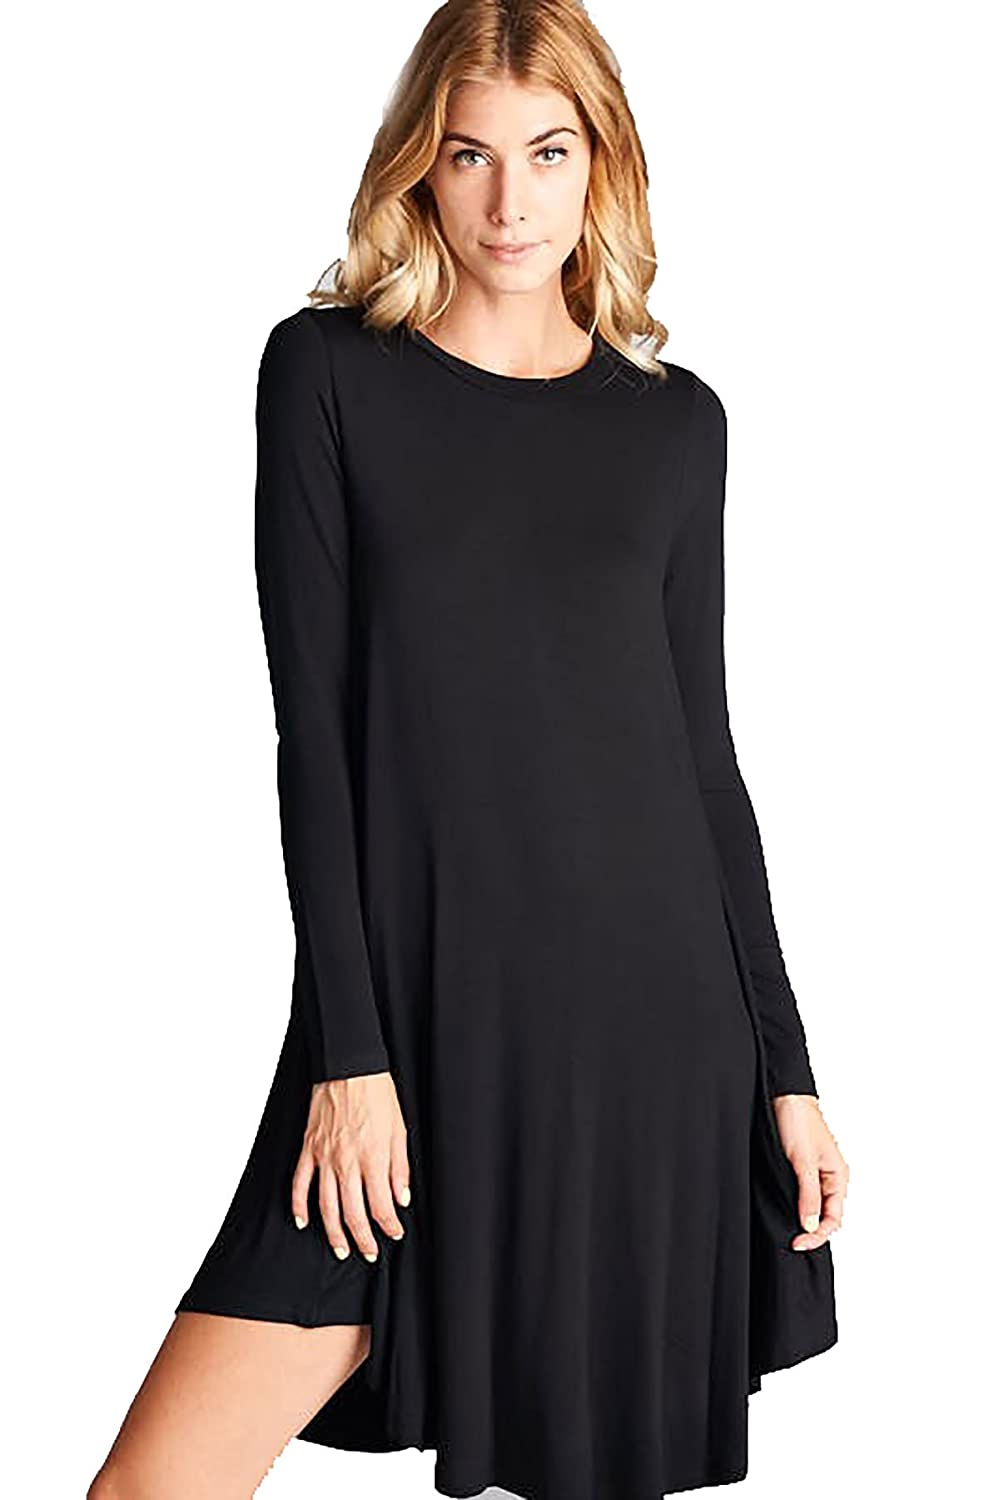 cfdfb49df759 Women's Solid Long Sleeves Rounded Neckline and Hem Flowy Dress Jersey  Tunic D5224 at Amazon Women's Clothing store: